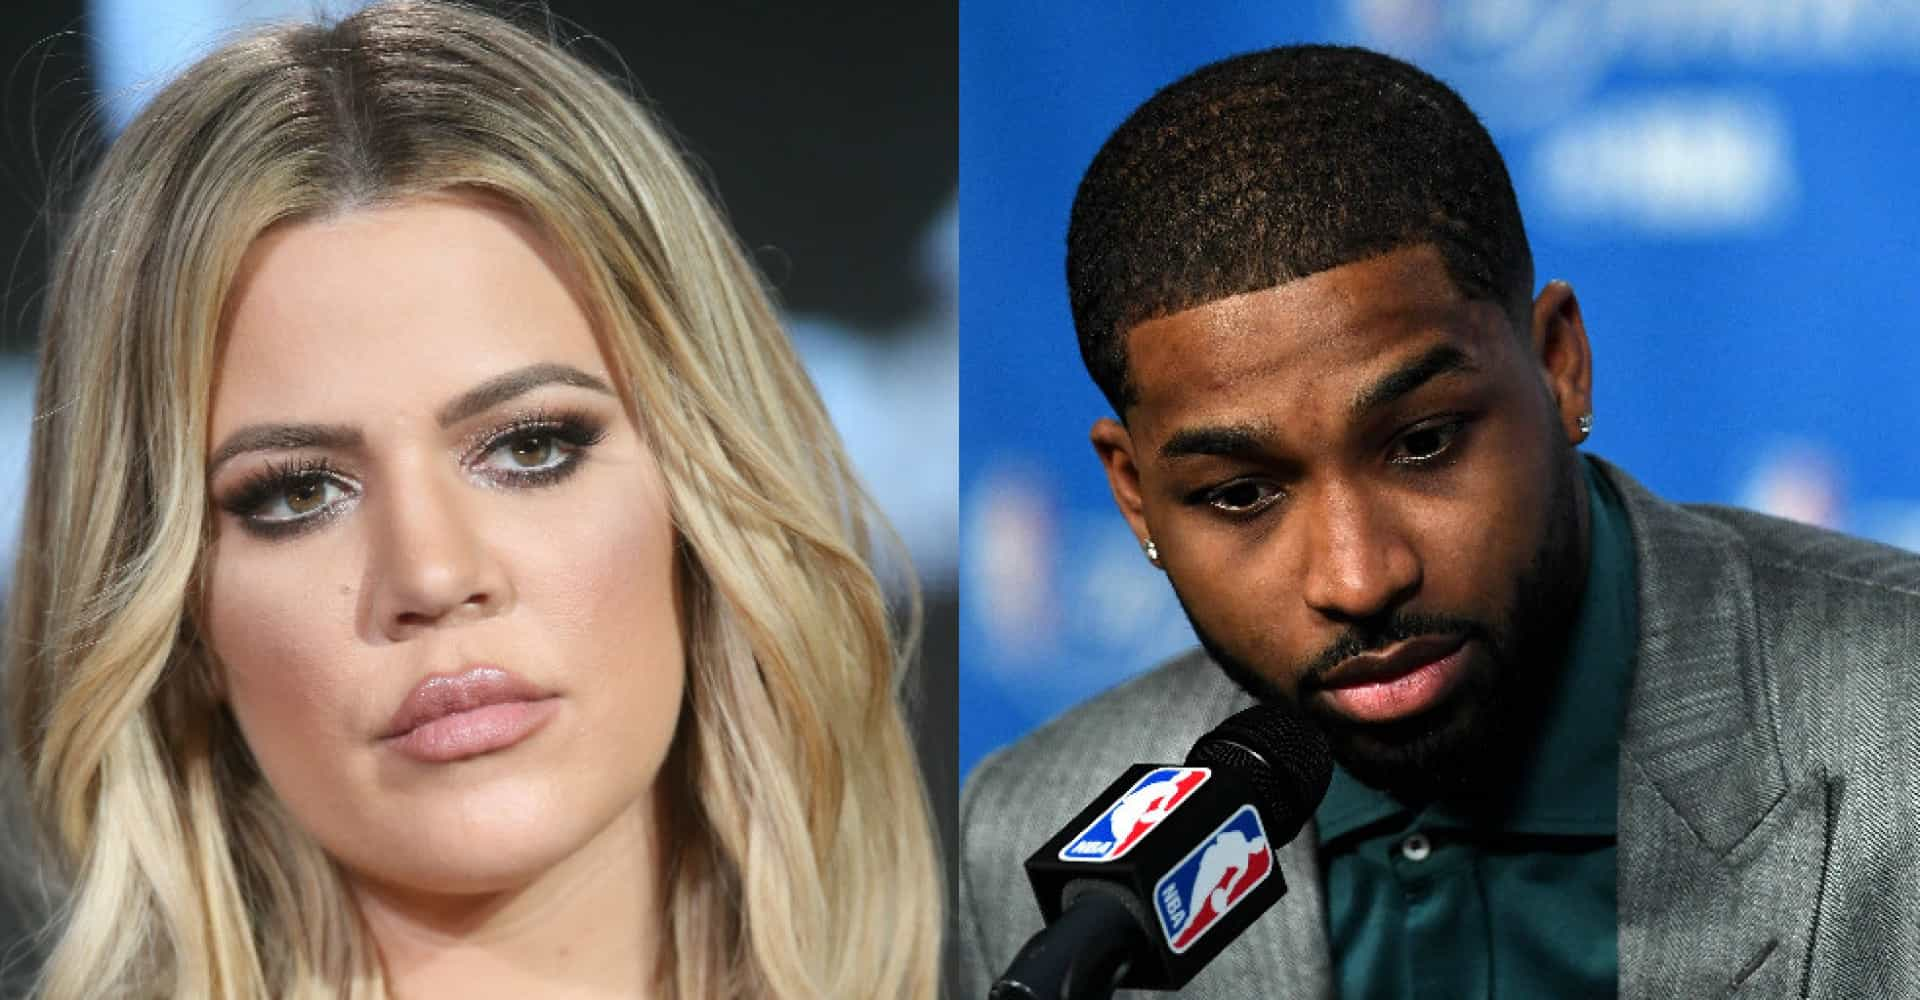 The shocking details of Tristan Thompson's rumoured cheating on pregnant Khloé Kardashian